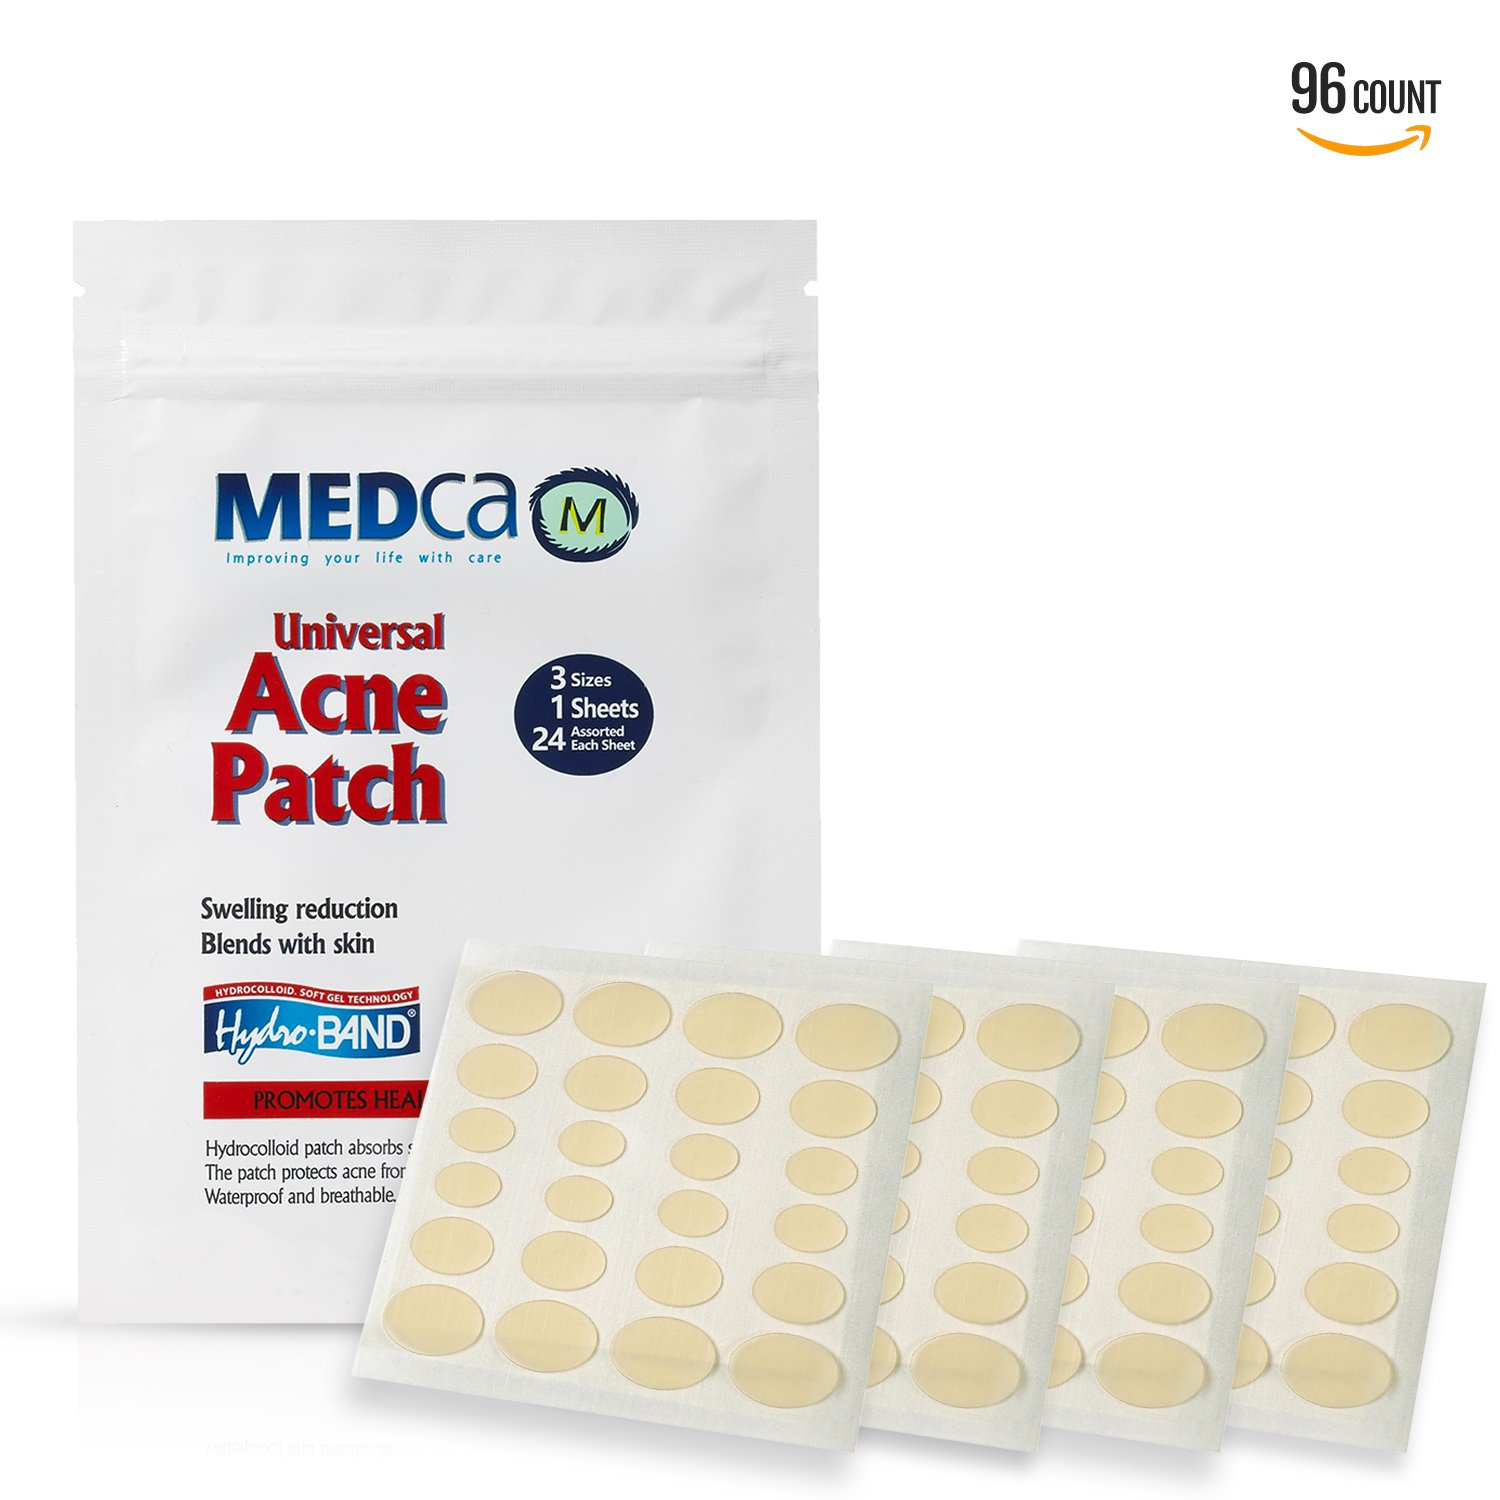 Acne Absorbing Covers - Hydrocolloid Acne Care Bandages (96 Count) Three Universal Patch Sizes, Acne Blemish Treatment for Face & Skin Spot Pore Patch that Conceals, Reduce Pimples and Blackheads MEDca